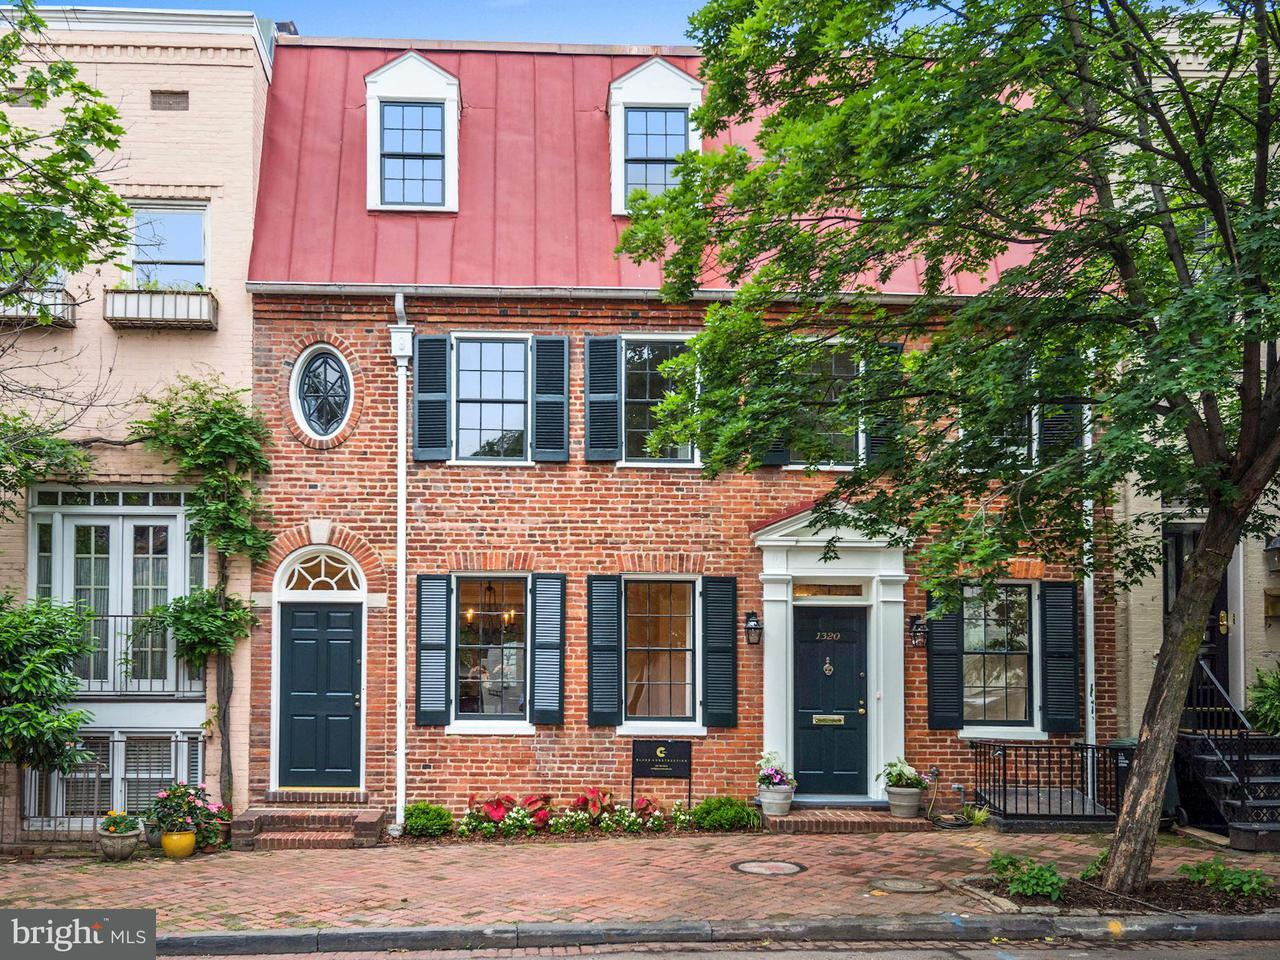 Townhouse for Sale at 1320 29th St Nw 1320 29th St Nw Washington, District Of Columbia 20007 United States